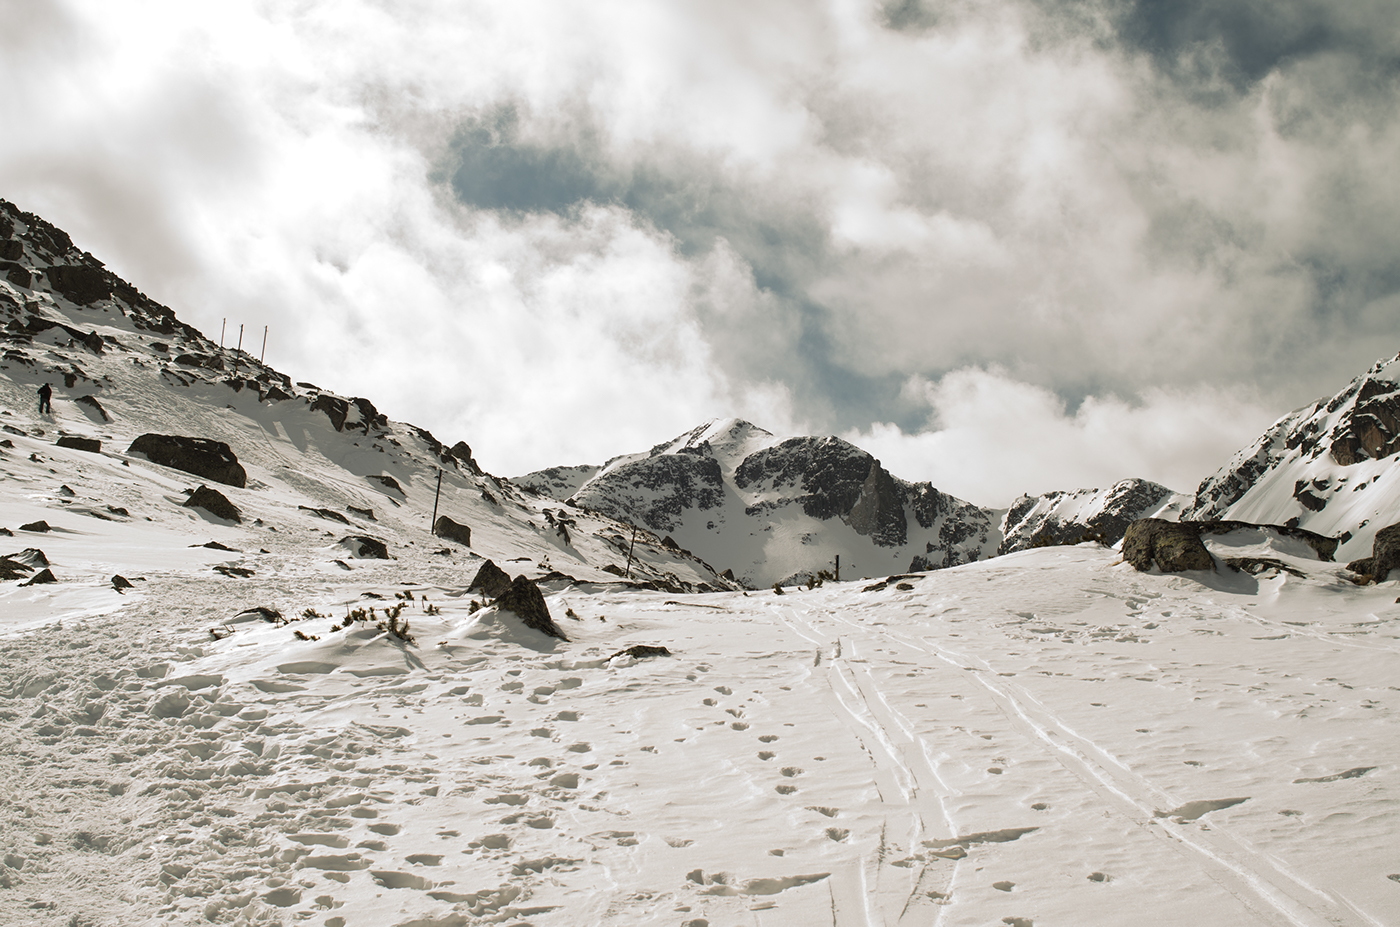 A warm-up slope, Musala Summit in the background.